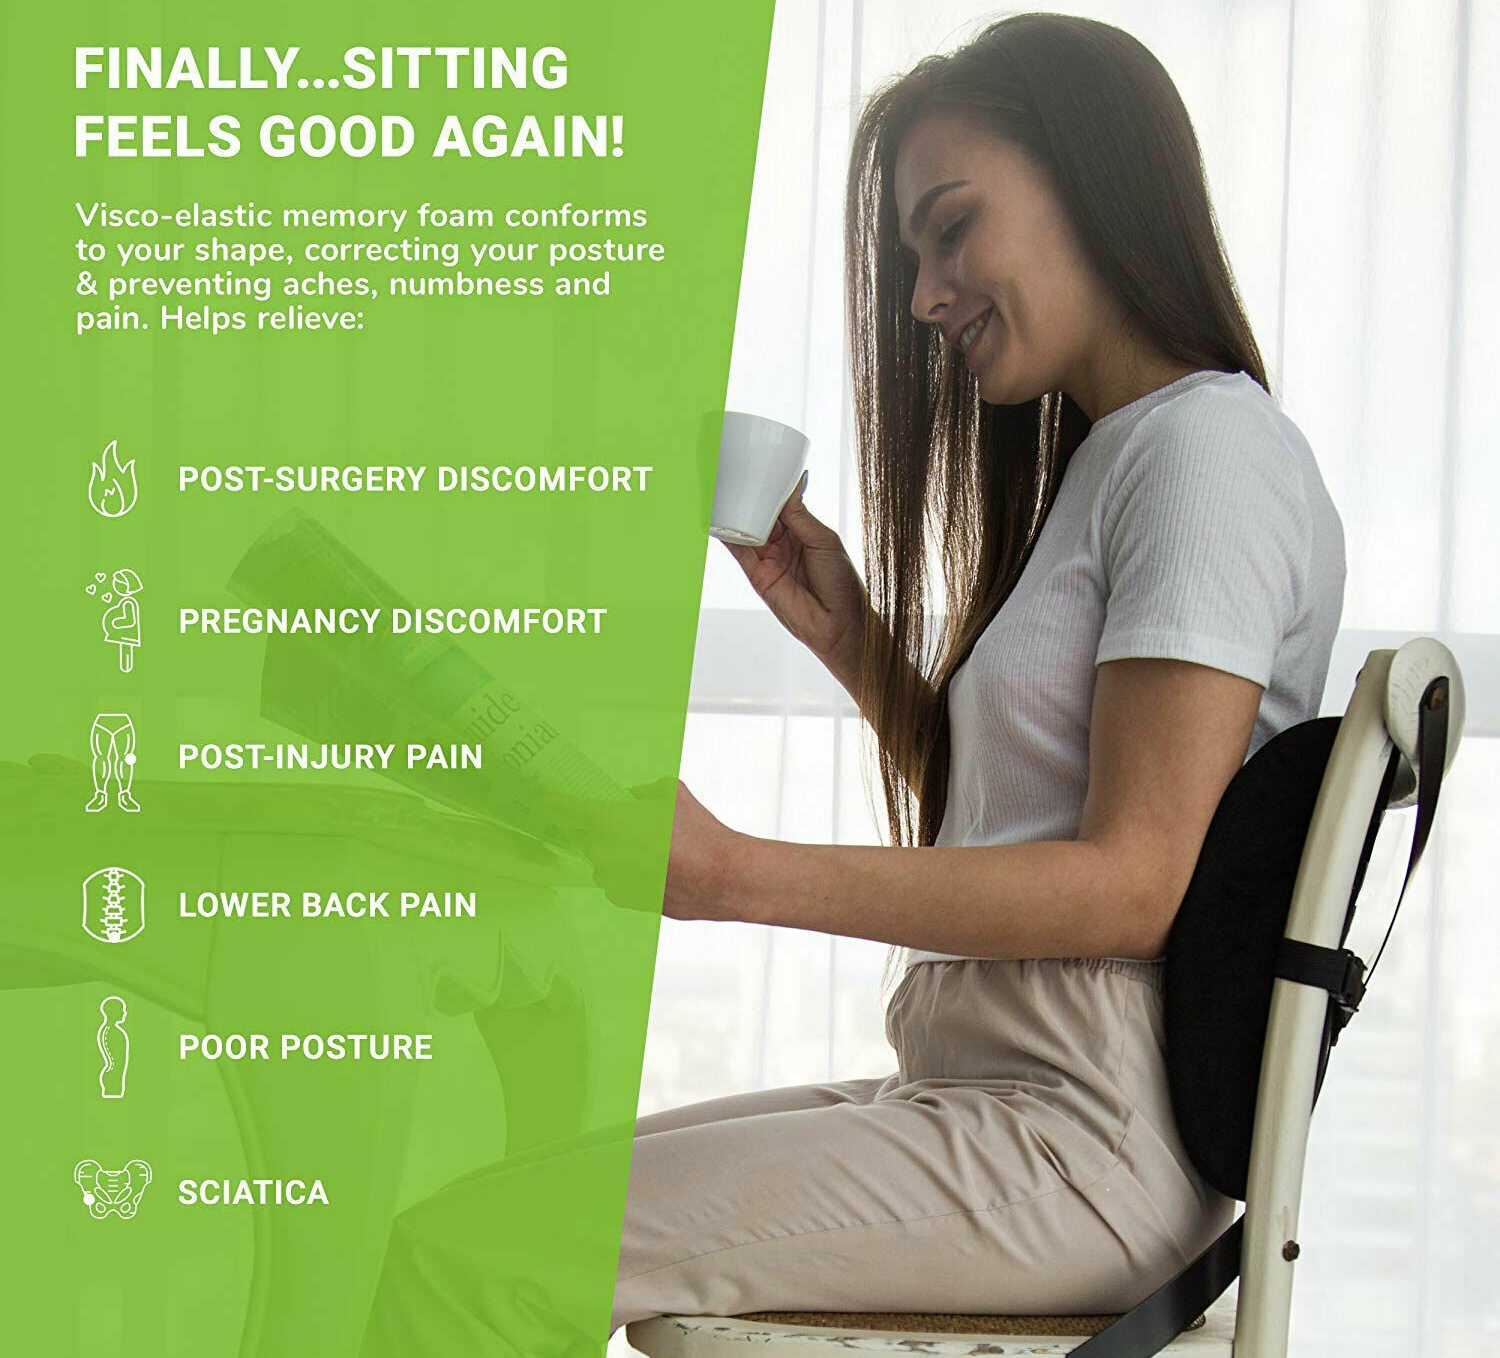 Posture Therapy Back Support Cushion Relieve prevent Lower Back, Sciatica, Disc Pain Free yourself from poor posture and back stress This lumbar cushion Posture Therapy Lumbar Back Support Cushion Office Car Chair Seat Sciatica Disc ultimate back support & posture correction, designed for stress free sitting